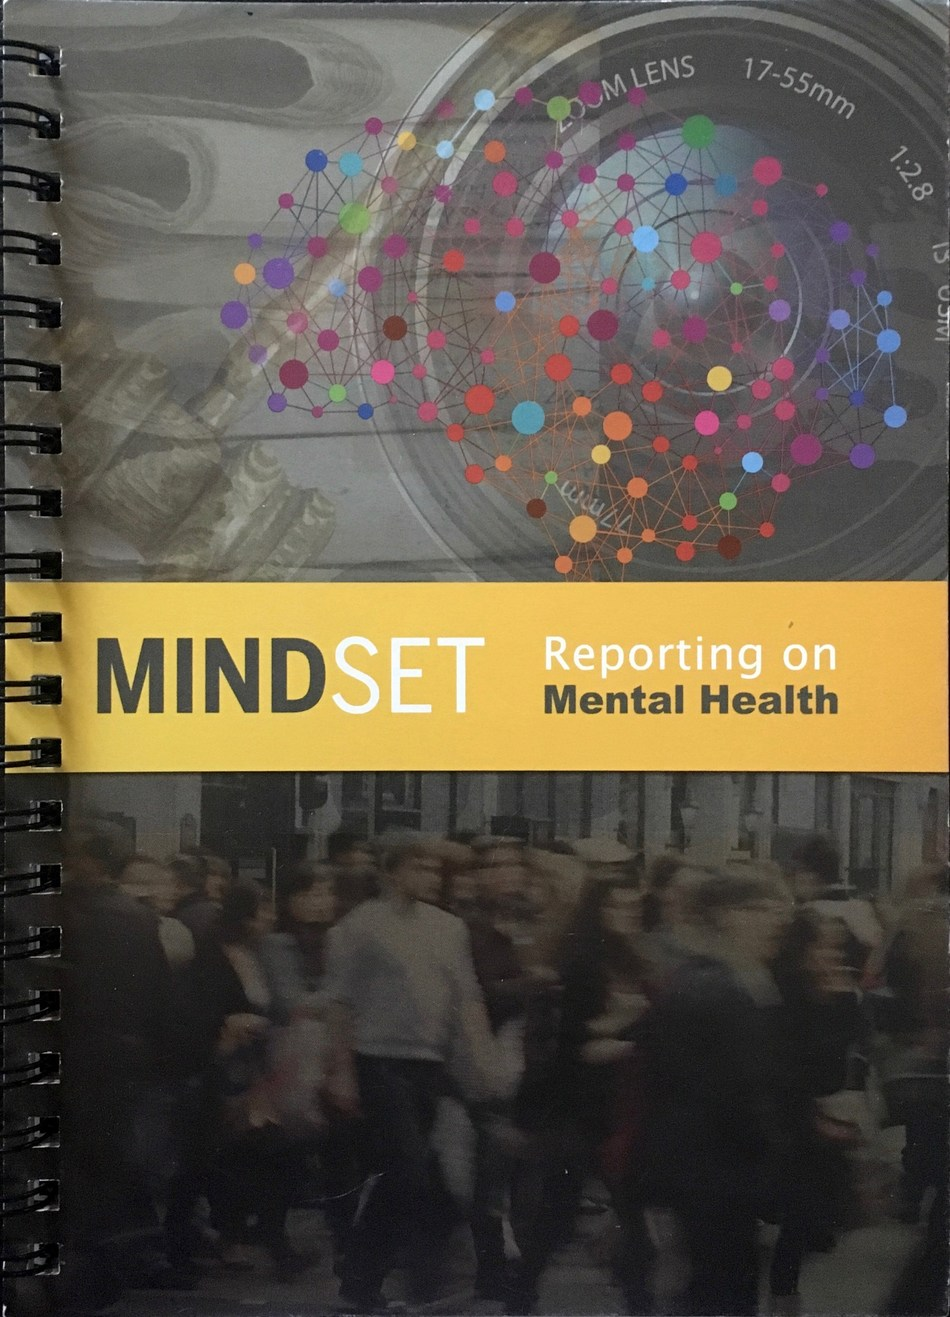 The Mindset Award for Workplace Mental Health Reporting is linked to the Mindset guide, used in newsrooms and journalism schools across Canada. (CNW Group/Canadian Journalism Forum on Violence and Trauma)